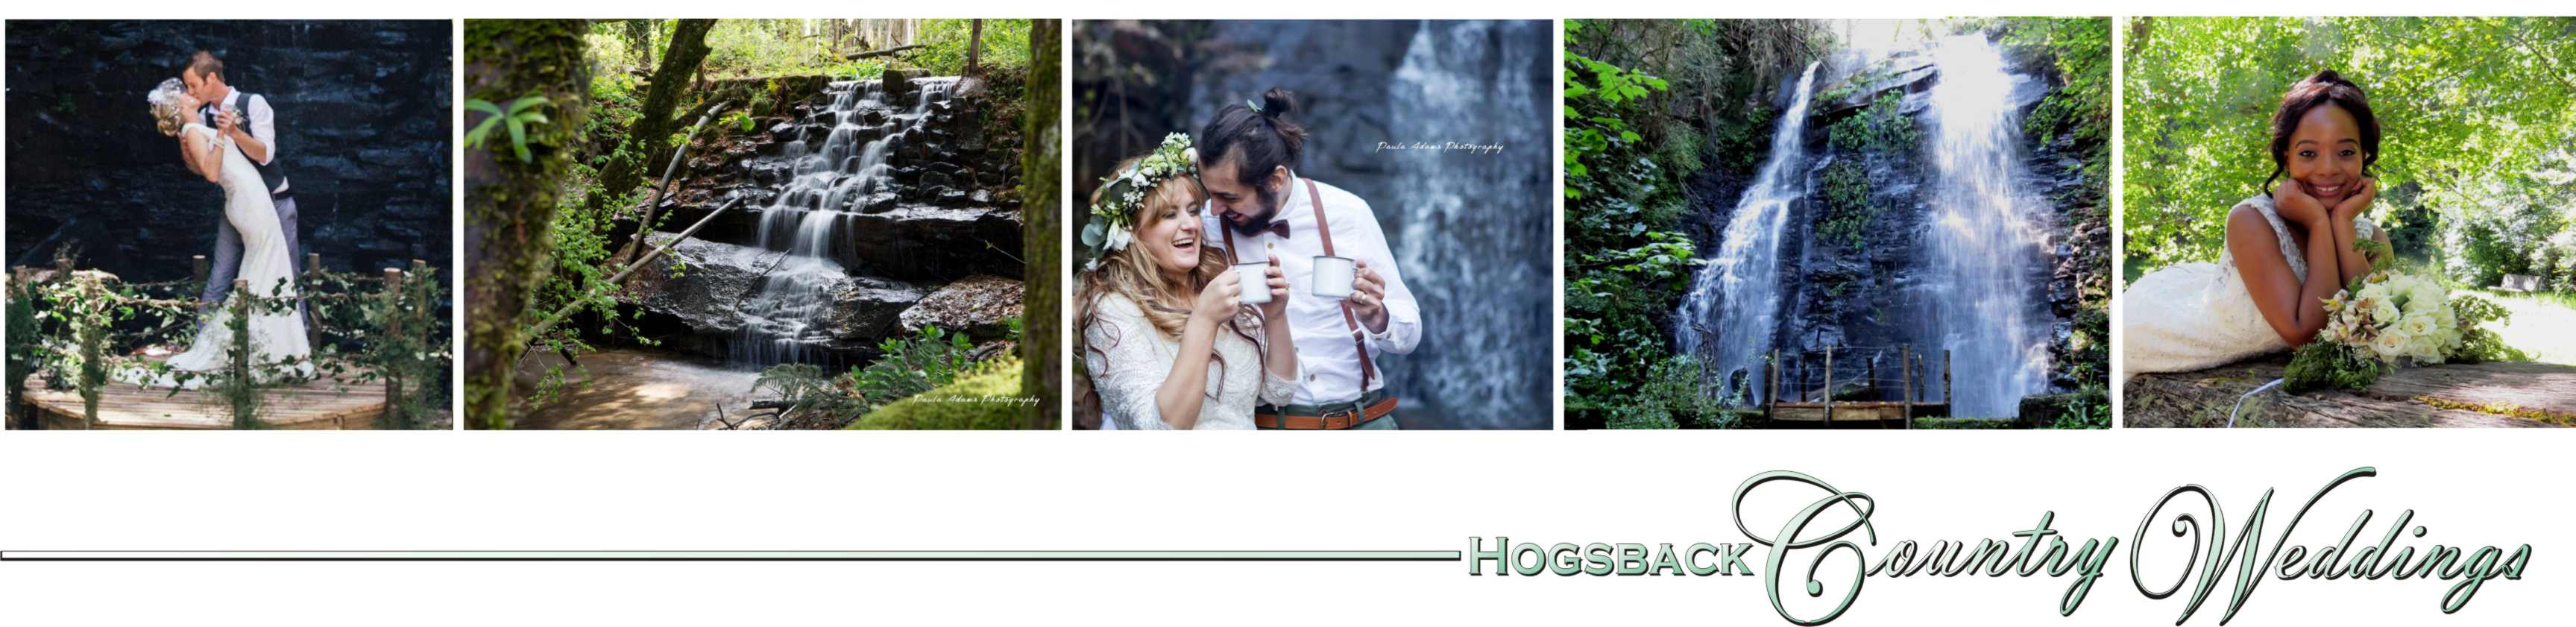 Hogsback Country Weddings